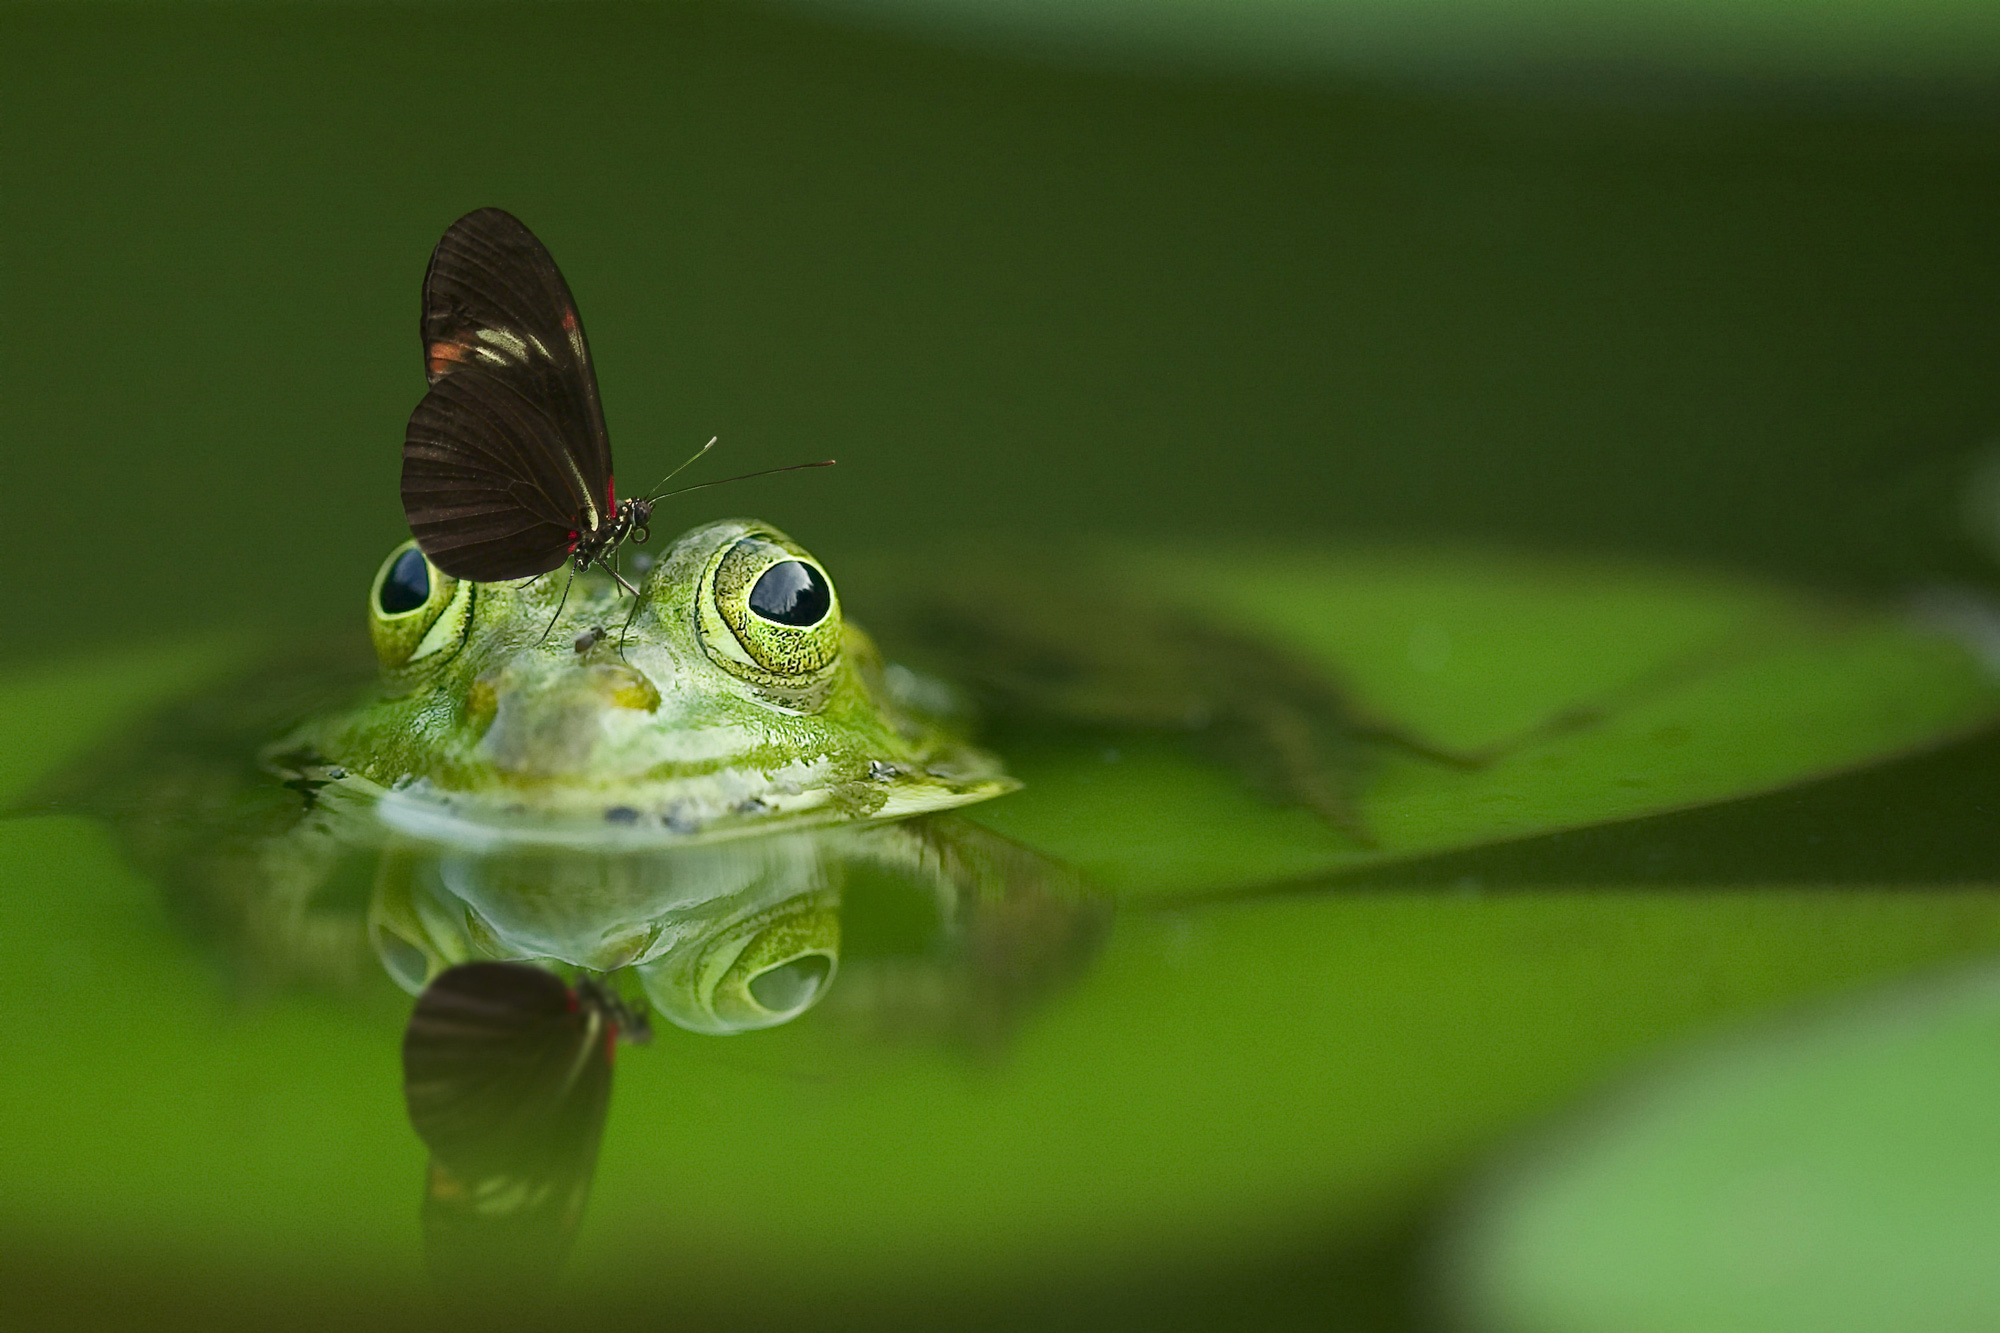 An example of creative nature photography; a frog sticking out of a pond on a lily pad with a butterfly on it